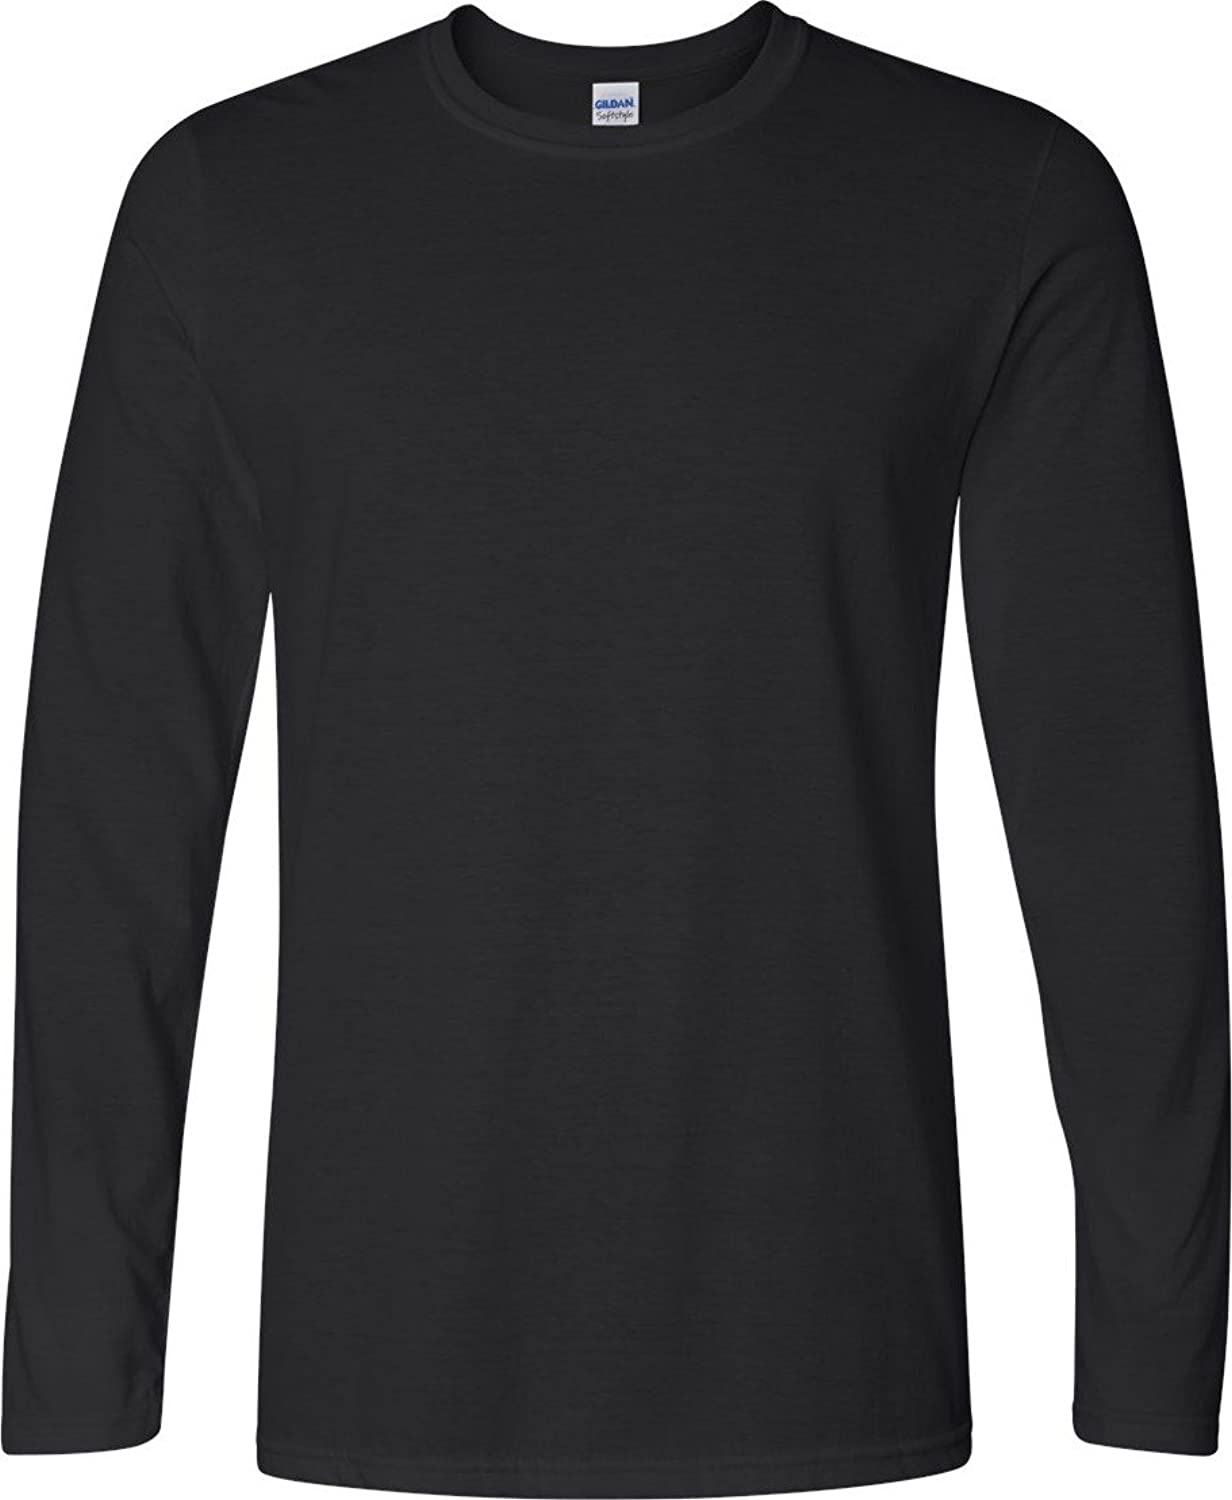 Plain black long sleeve t shirt is shirt for What is a long sleeve t shirt